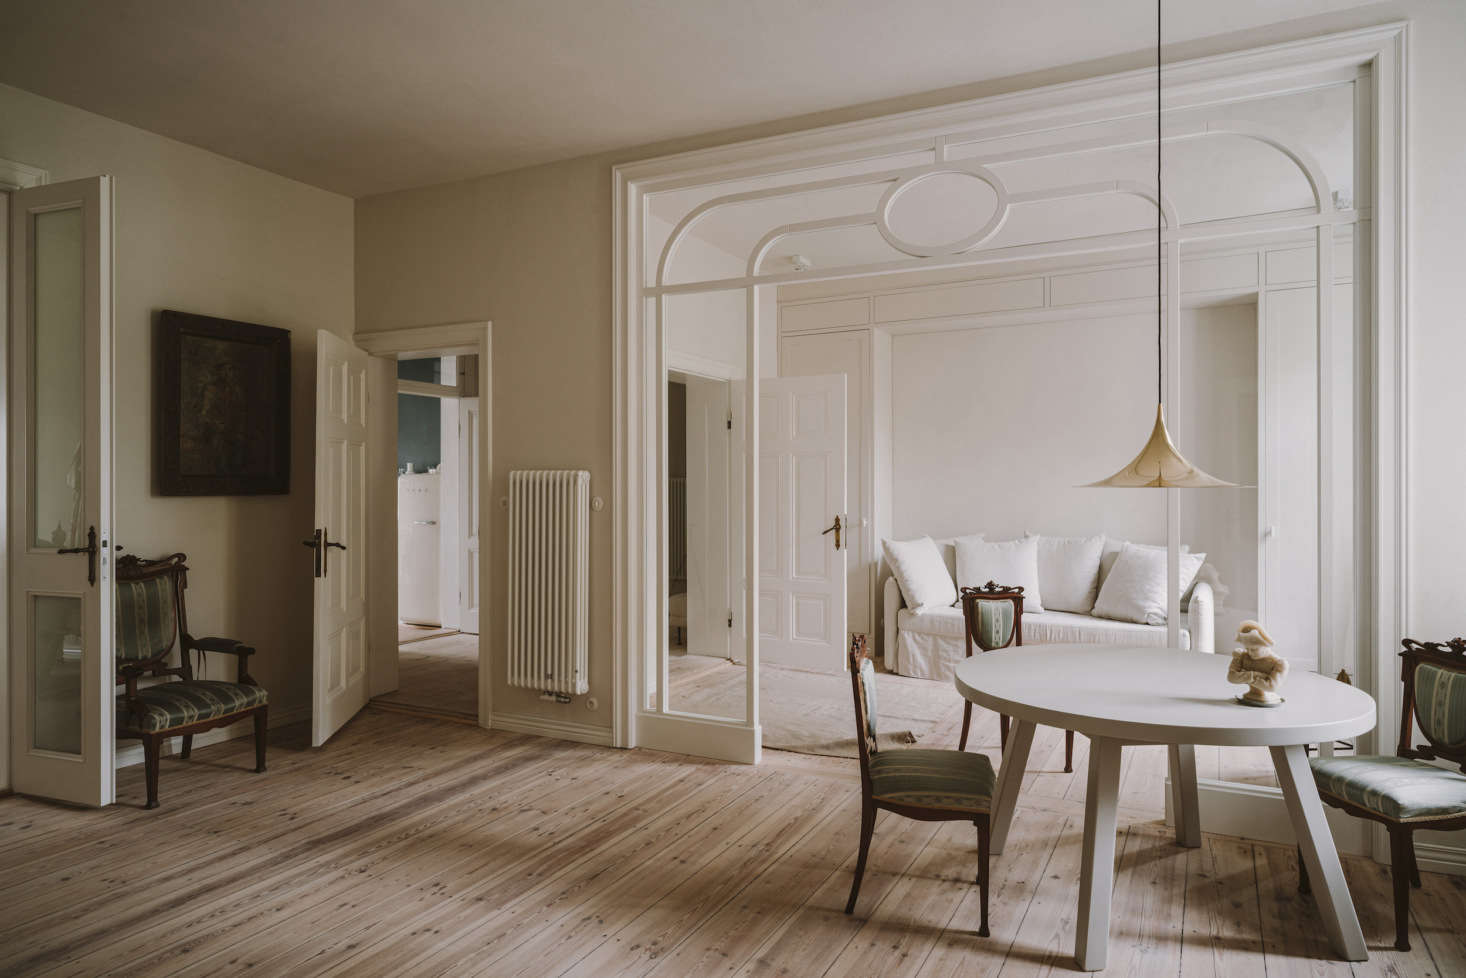 The view of the sitting and living rooms. The two-bedroom apartment was taken down to the studs; the only original features that were kept were the pine floors (sanded and oiled) and a fireplace. For the walls, Chrapka chose a soft white achieved by mixing Farrow & Ball&#8